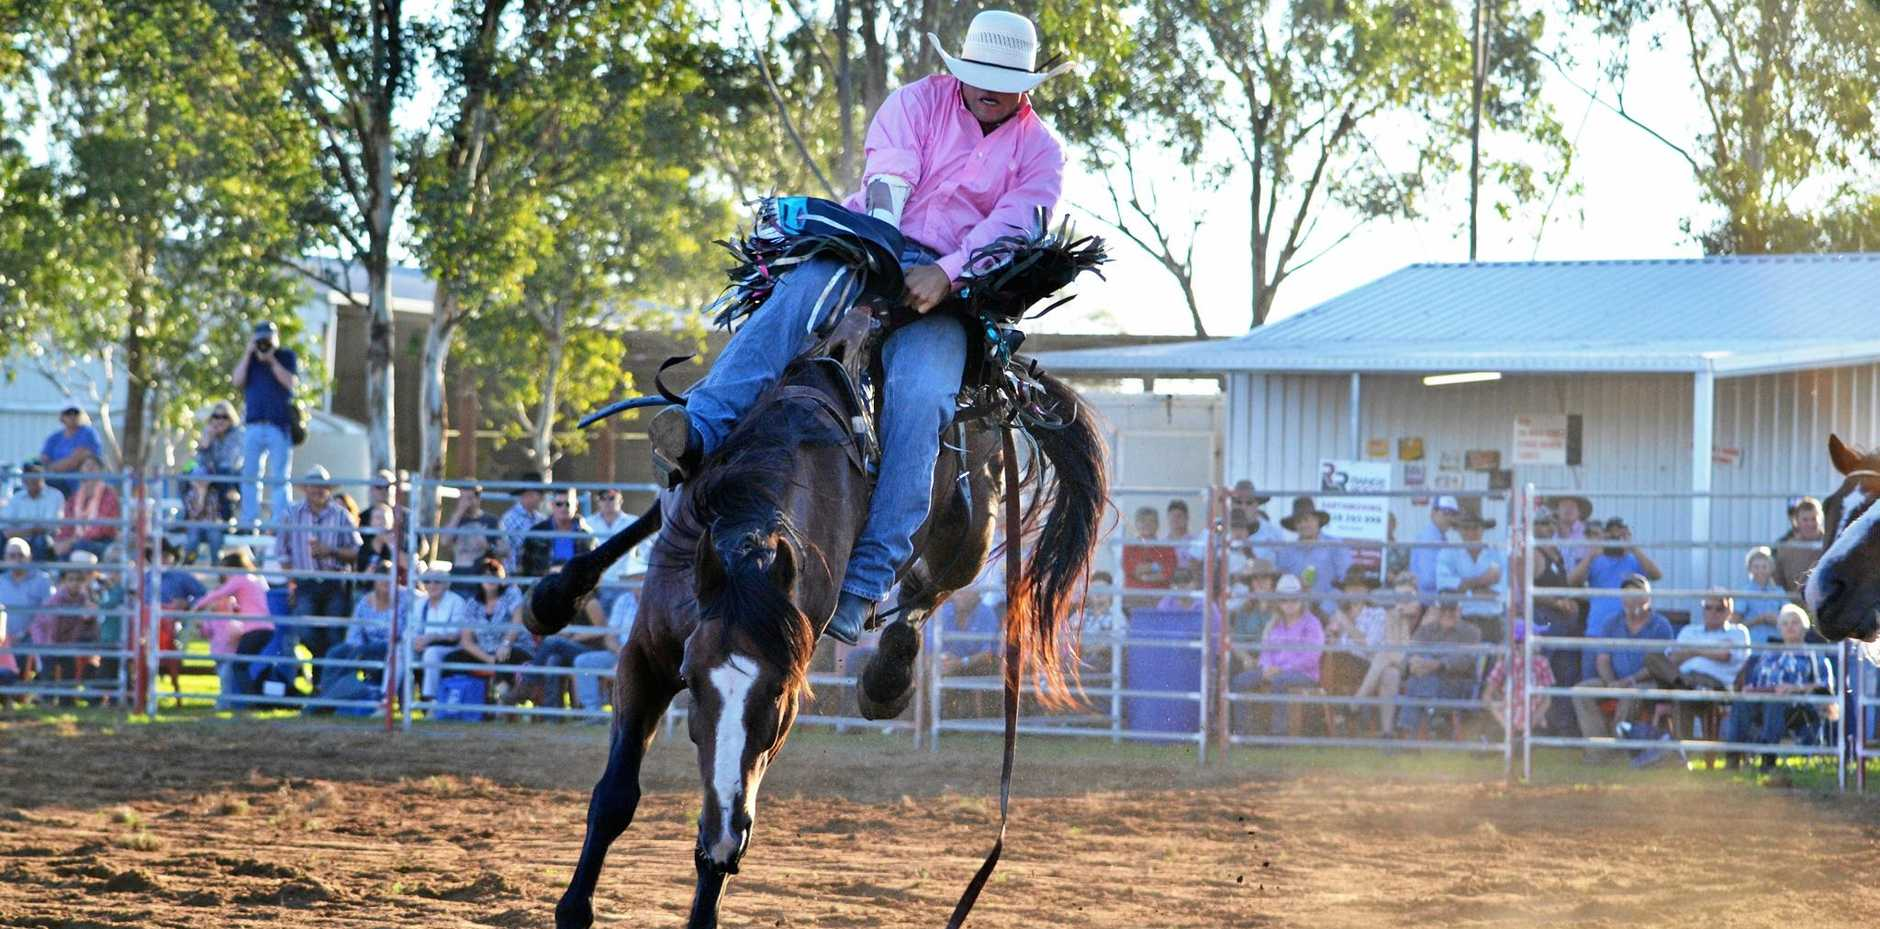 RIDE 'EM COWBOY: The Brymaroo Rodeo is back with a bang this year.